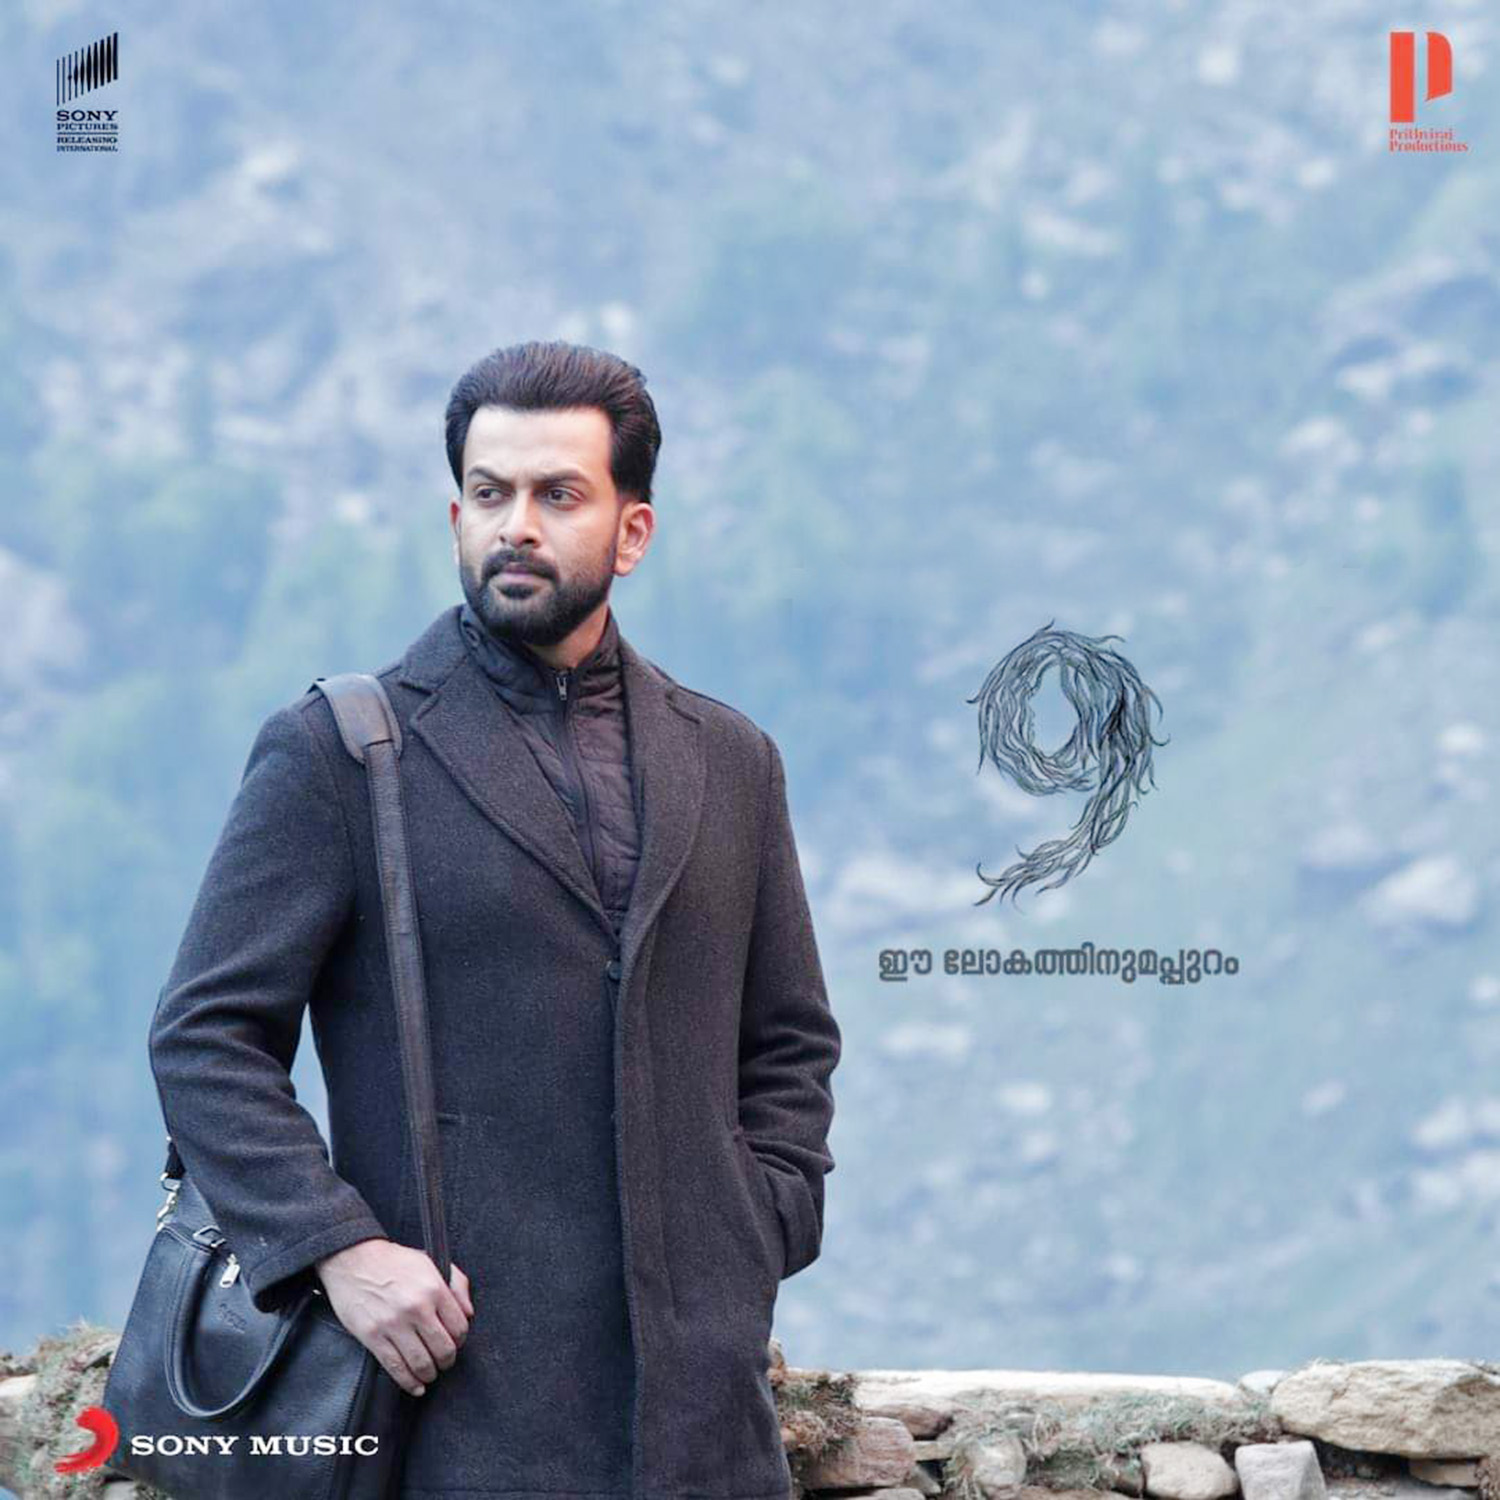 nine review,nine malayalam movie review,nine movie review,9 review,9 movie review,nine movie poster,nine movie stills,prithviraj,actor prithviraj,prithviraj new movie,prithviraj's nine review,nine movie karela box office report,nine movie hit or flop,director jenuse mohamed,mamta mohandas,mamta mohandas prithviraj new movie